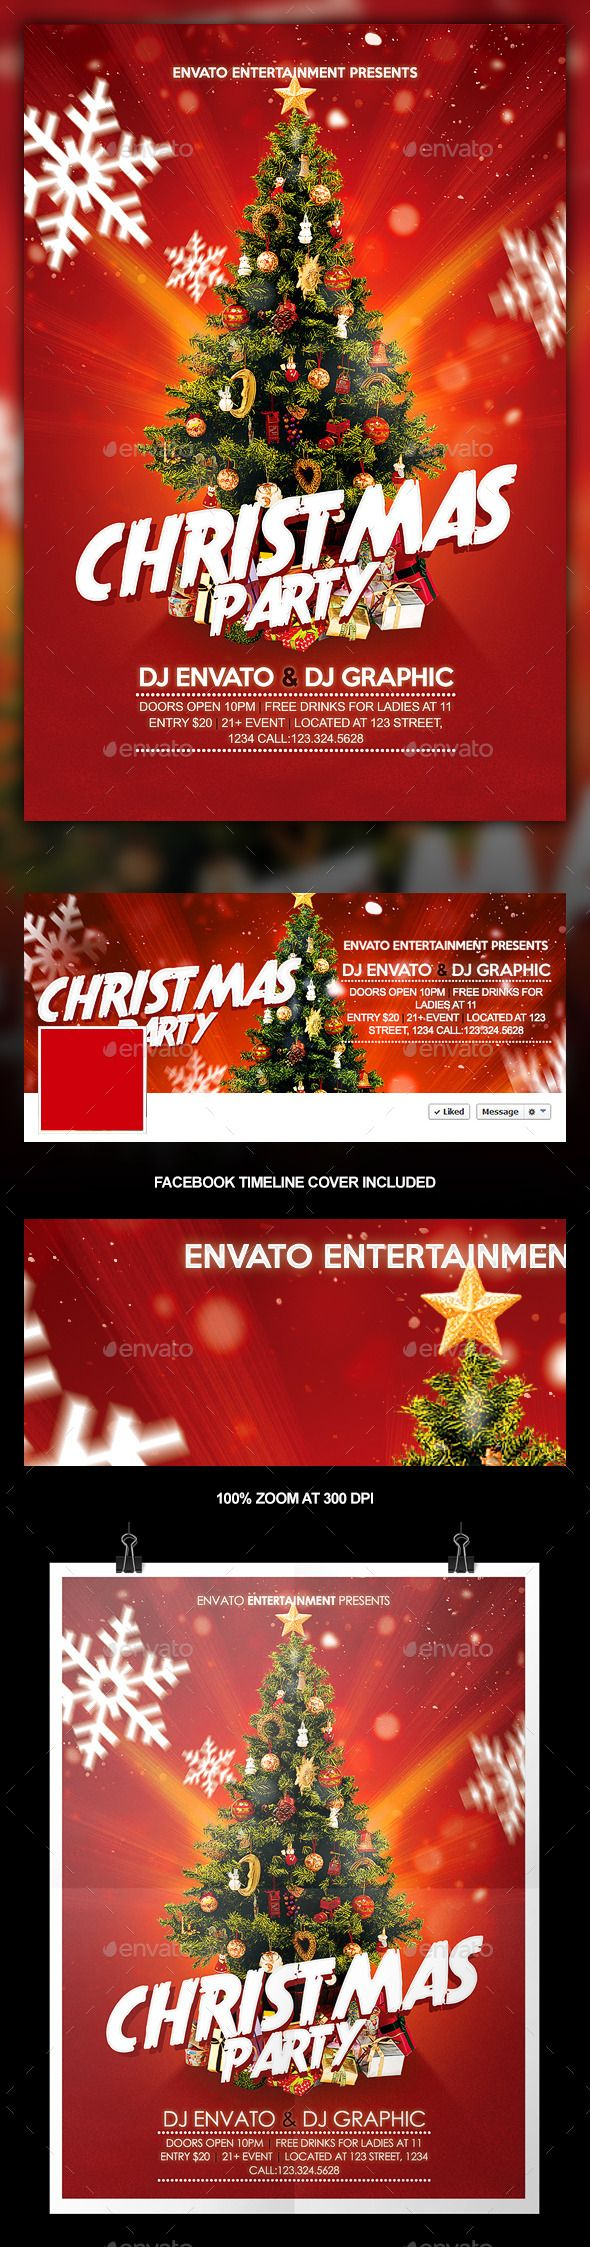 best images about party flyer templates christmas party flyer